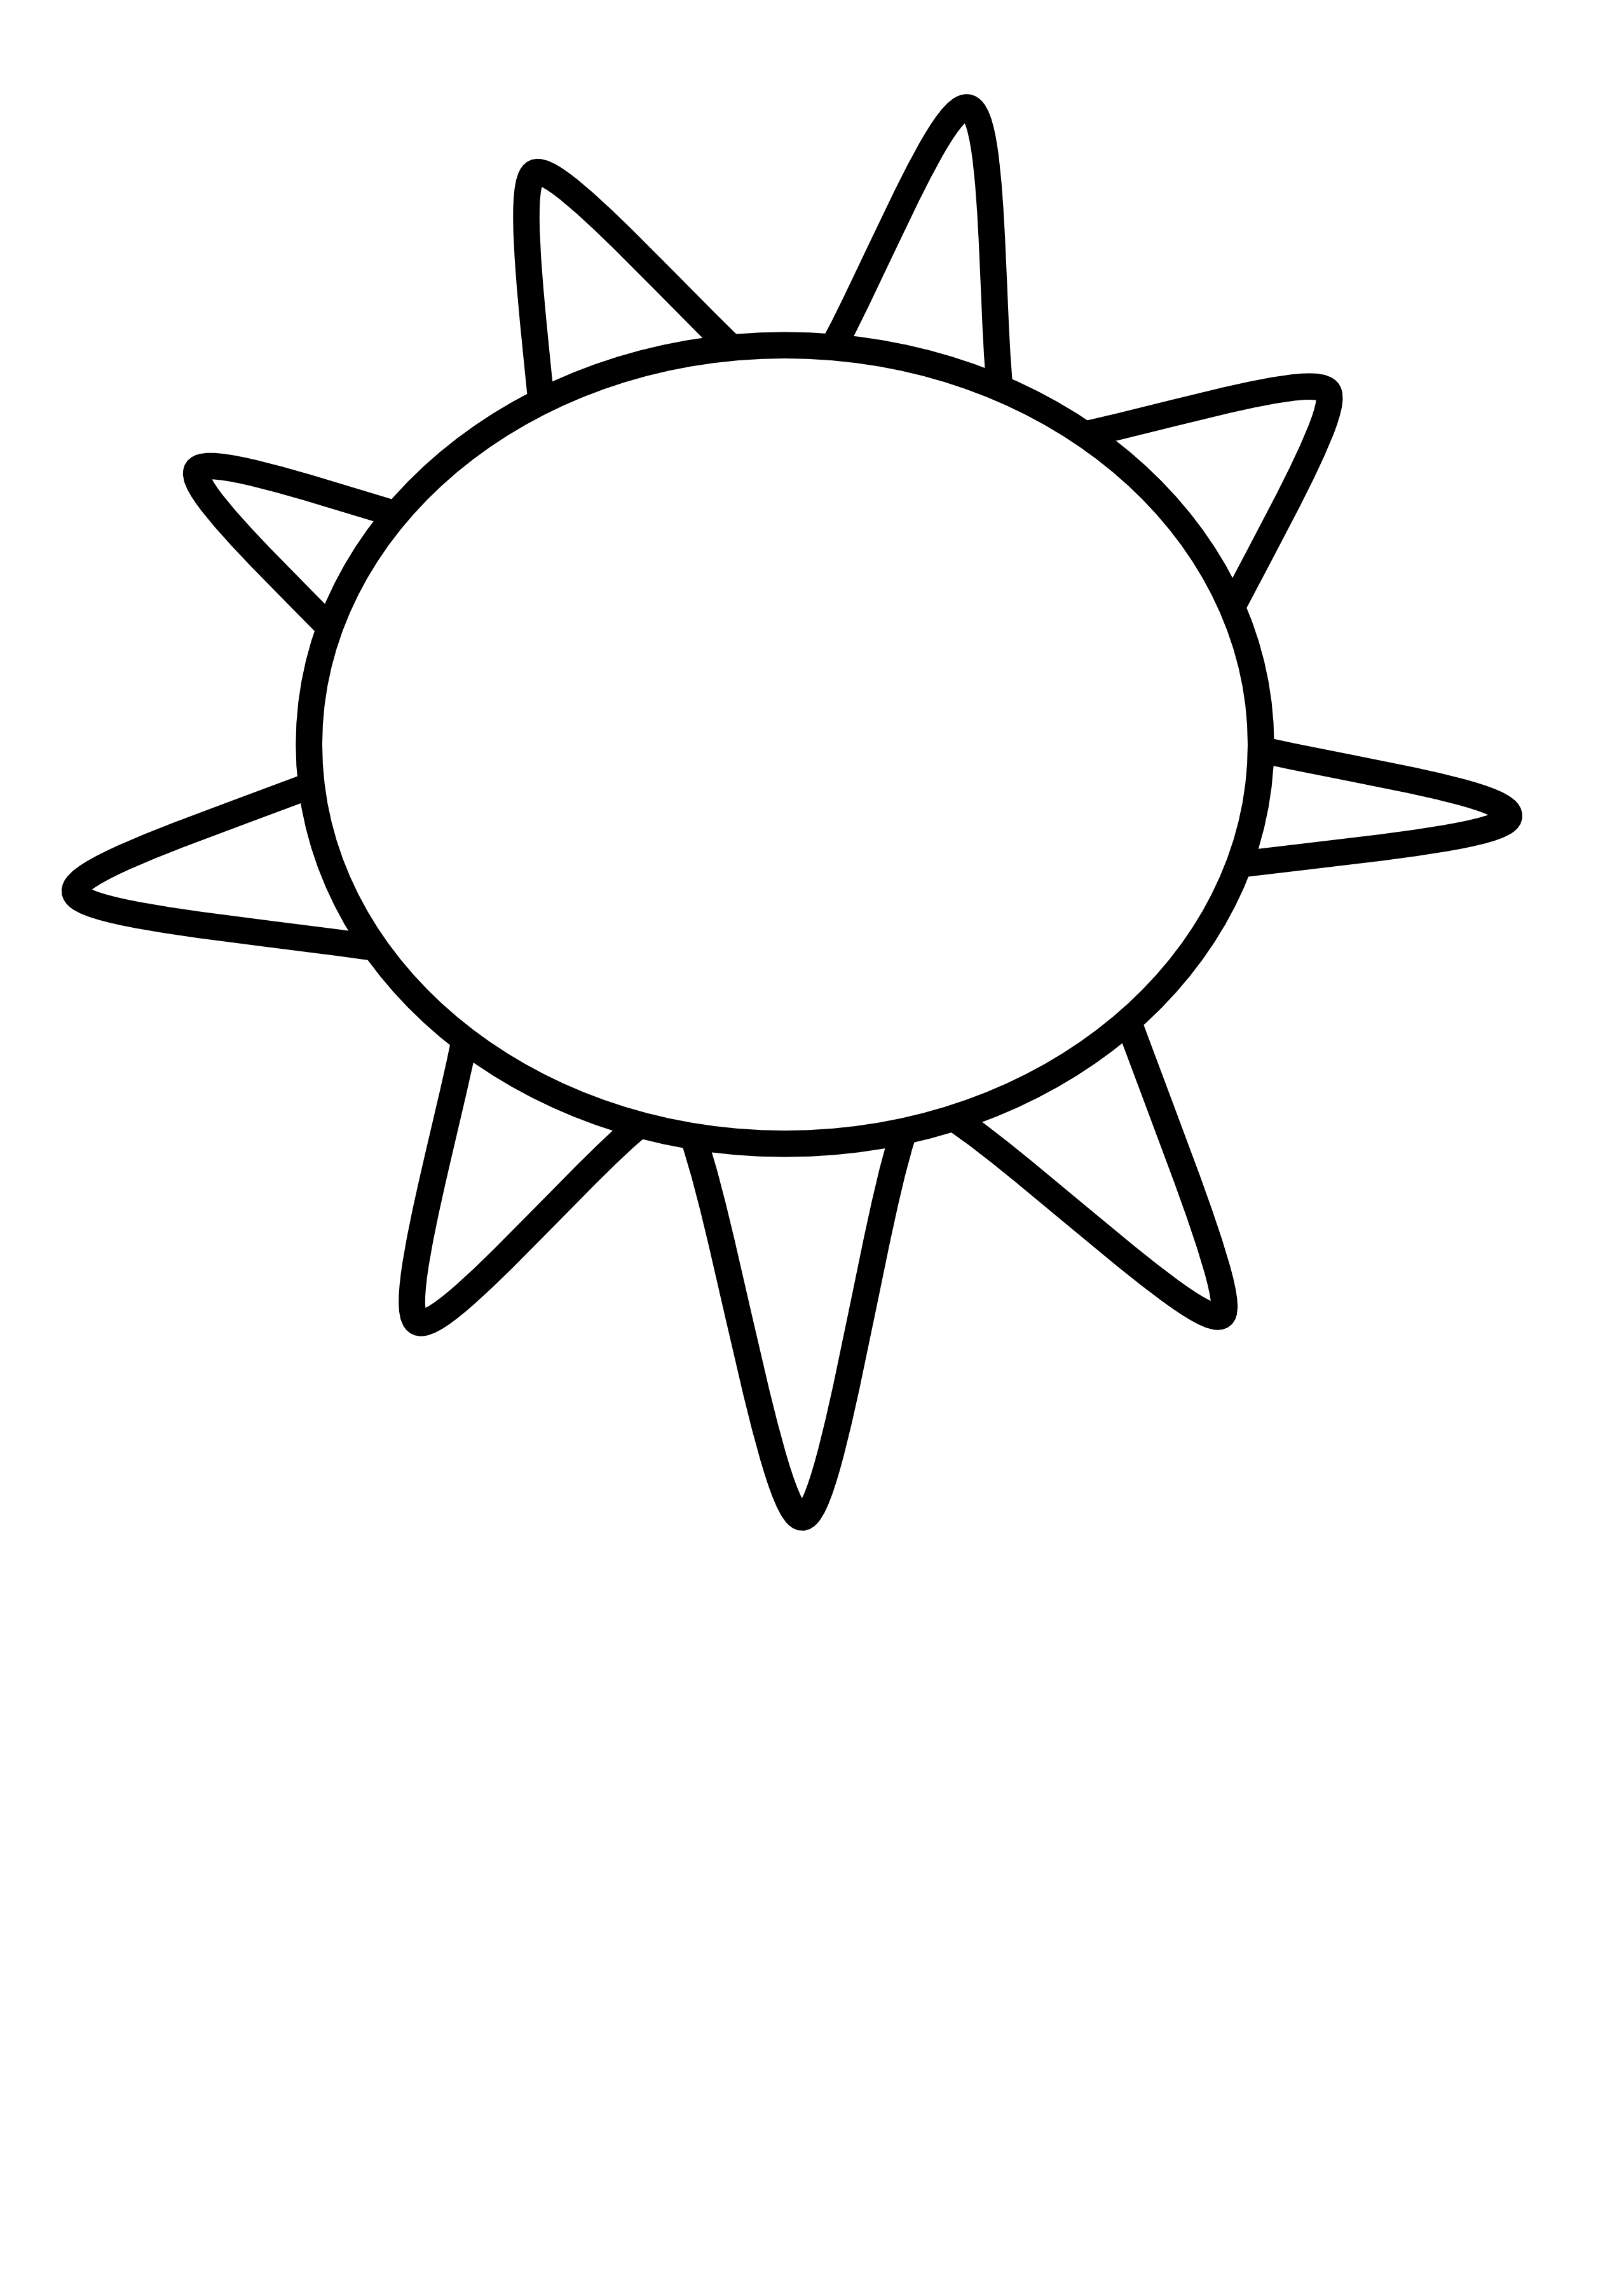 Line Art Black And White : Sun black and white clipart suggest